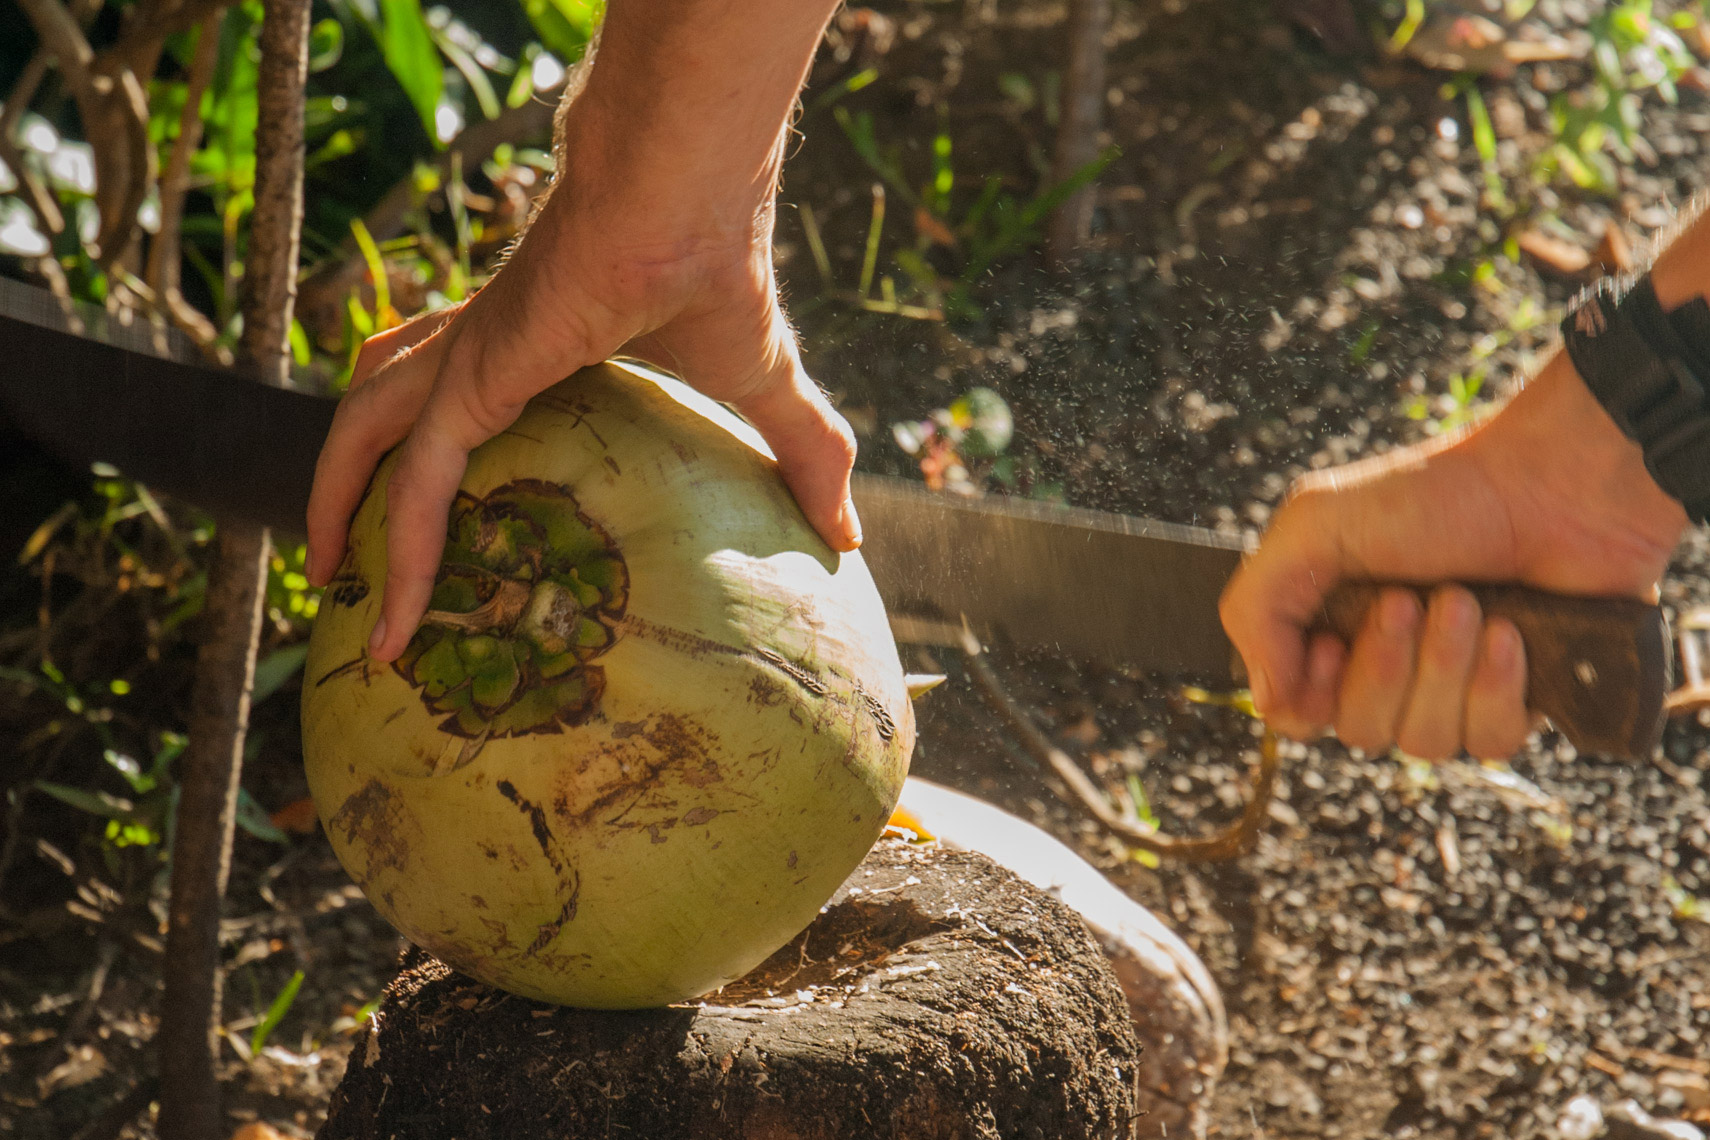 Coconut water and machete